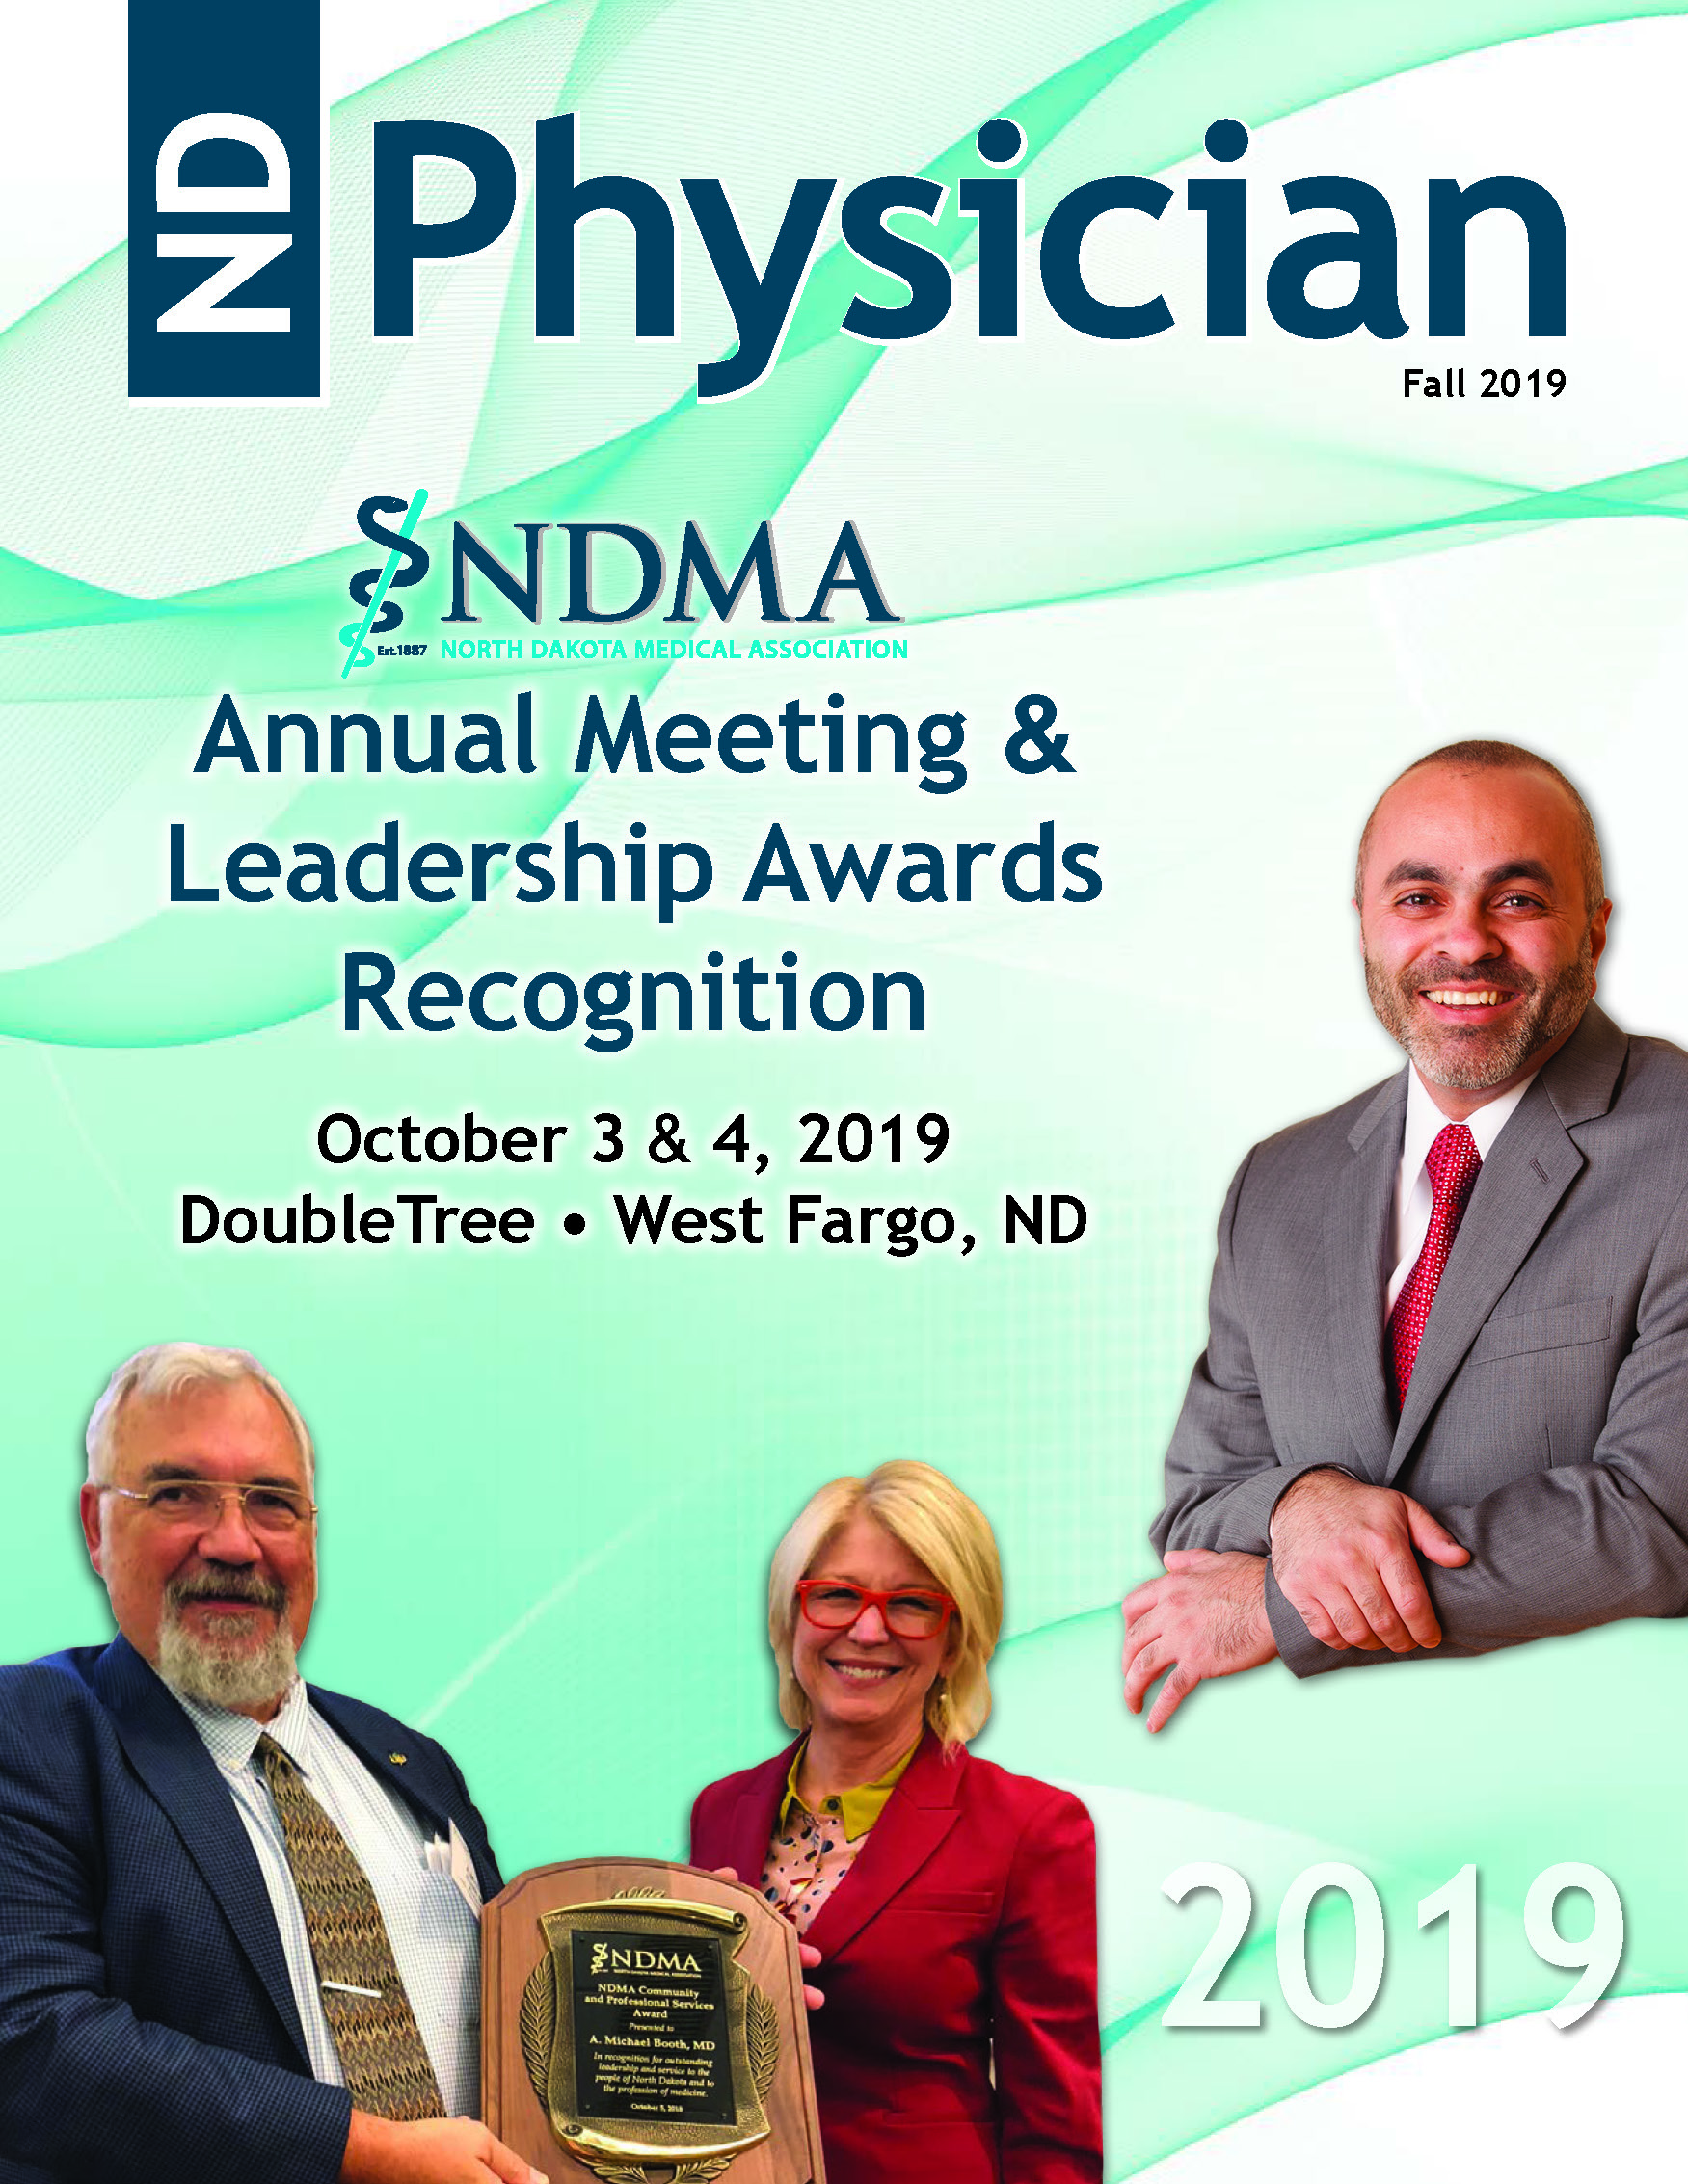 ND Physician Fall 2019 - Annual Meeting Edition magazine cover